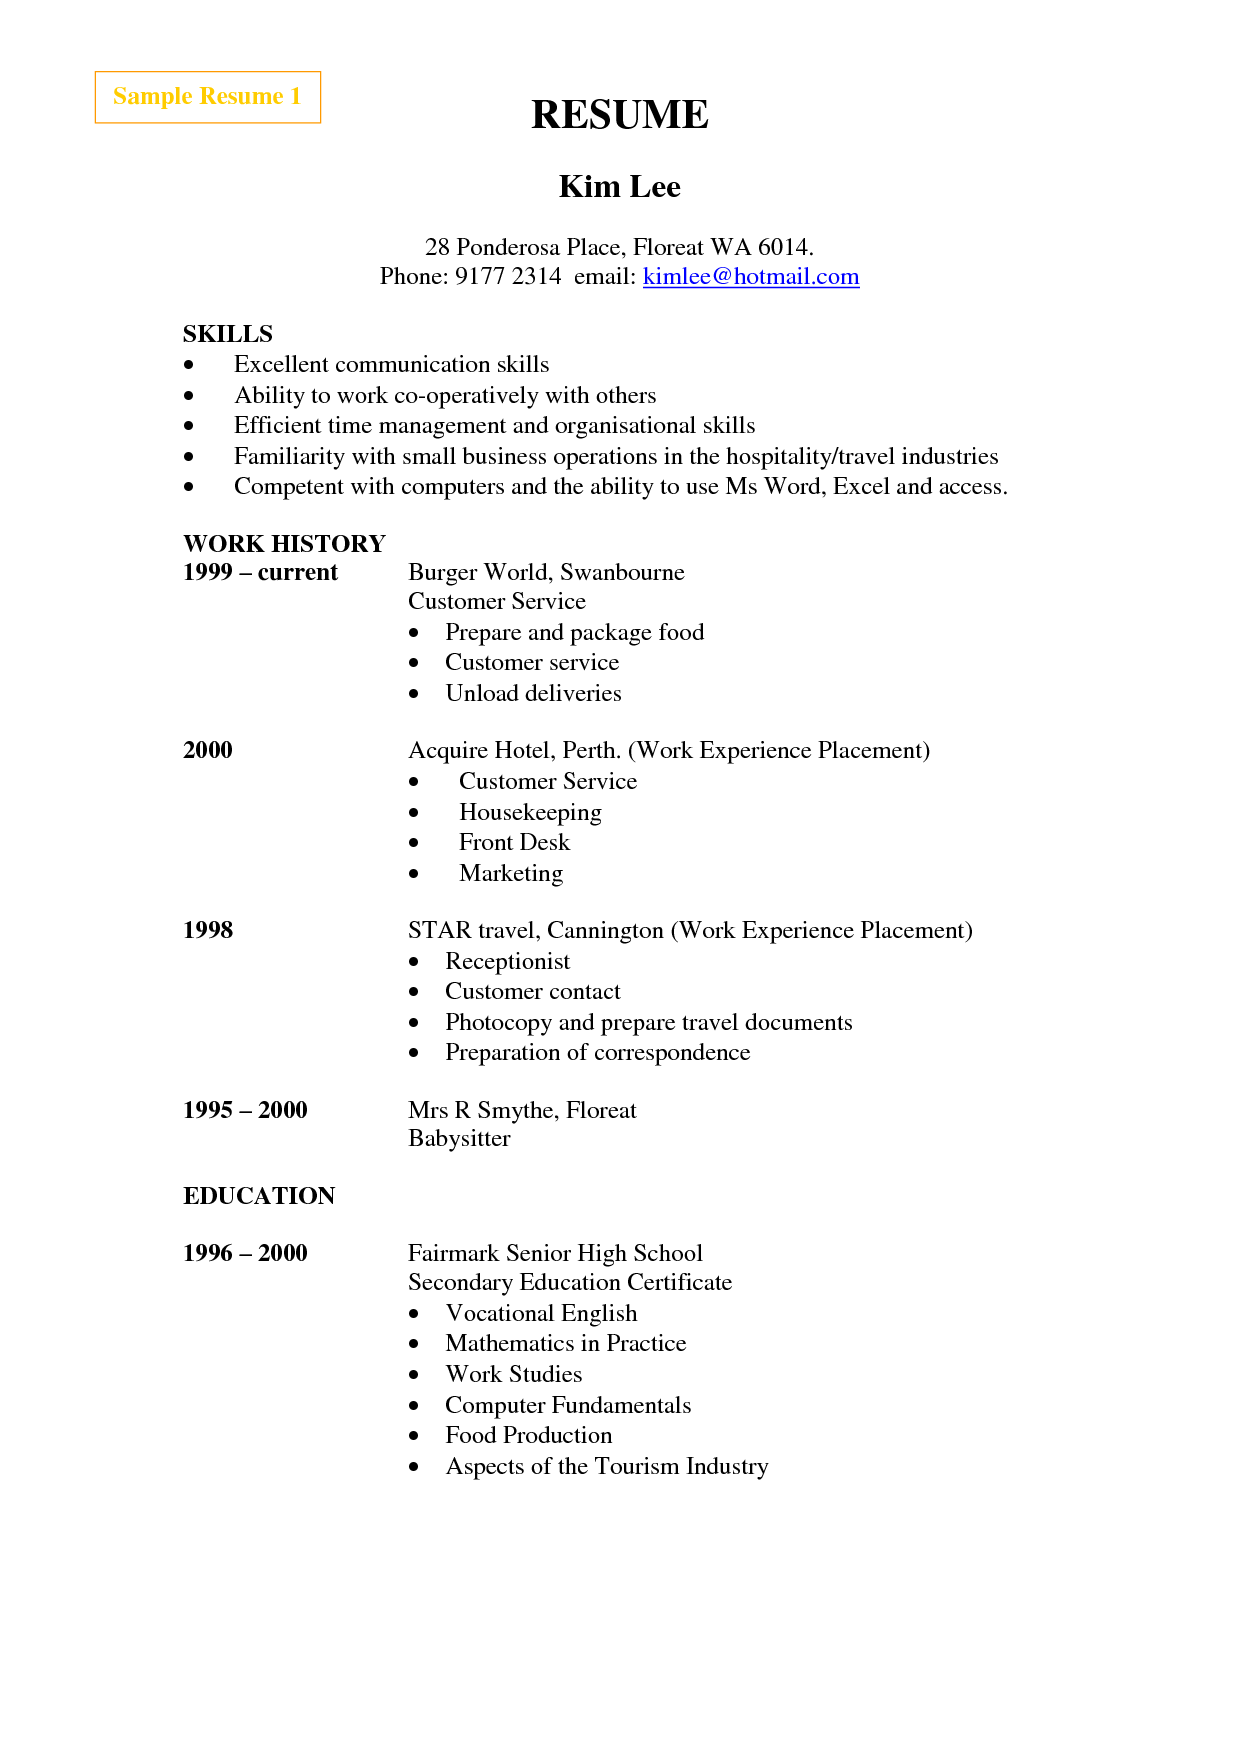 Sample resume for cleaner hotel cleaning example service sample resume for cleaner hotel cleaning example service electrician yelopaper Gallery